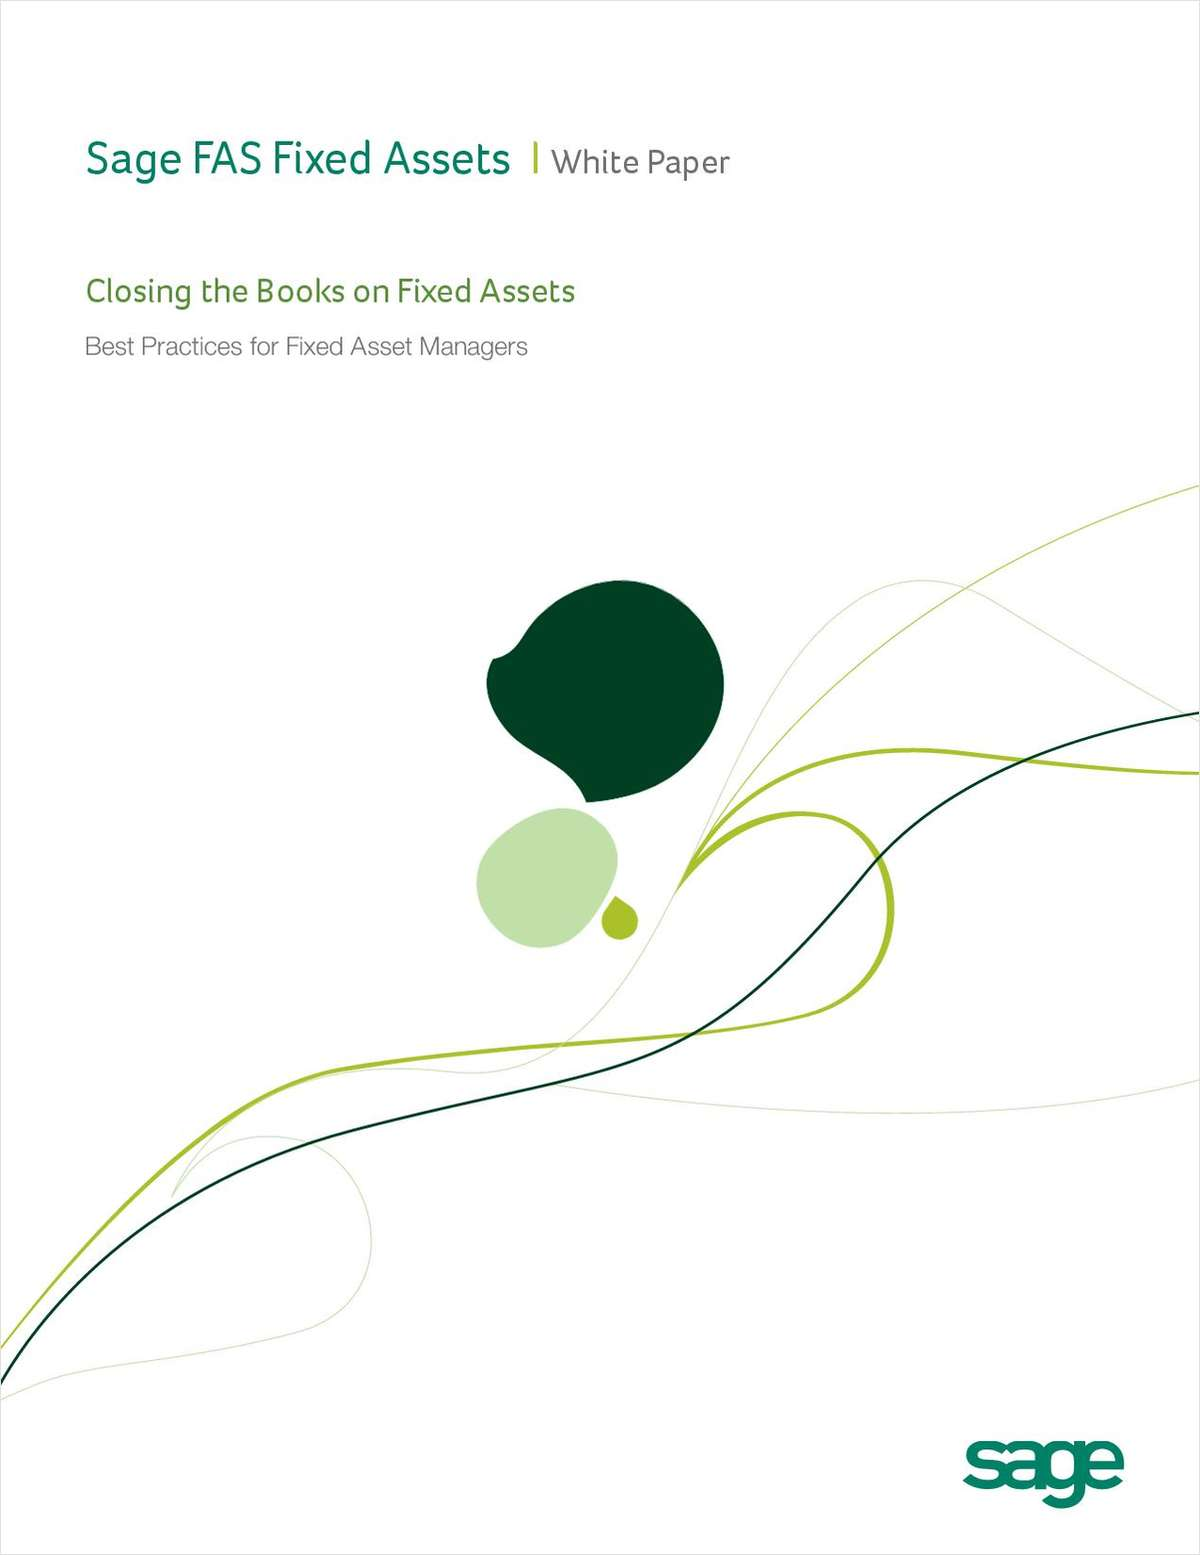 Closing the Books on Fixed Assets: Best Practices for Fixed Asset Managers